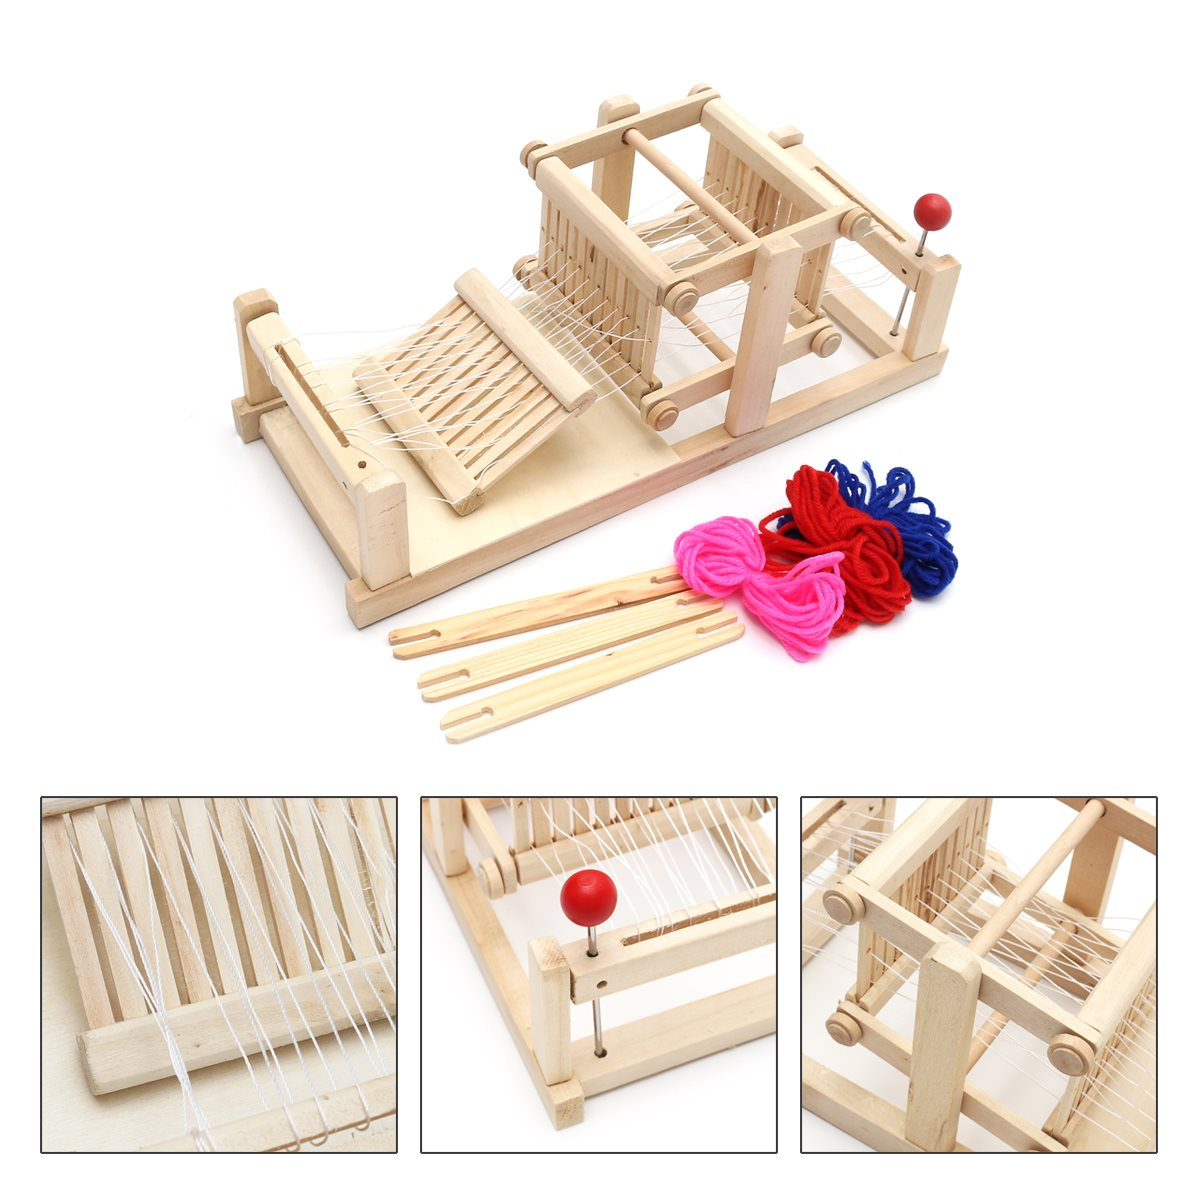 Chinese Traditional Wooden Table Weaving Loom Machine Model Hand Craft Toy Gift For Children Adult inverter fr s520se 0 4k cht 0 4kw 220v